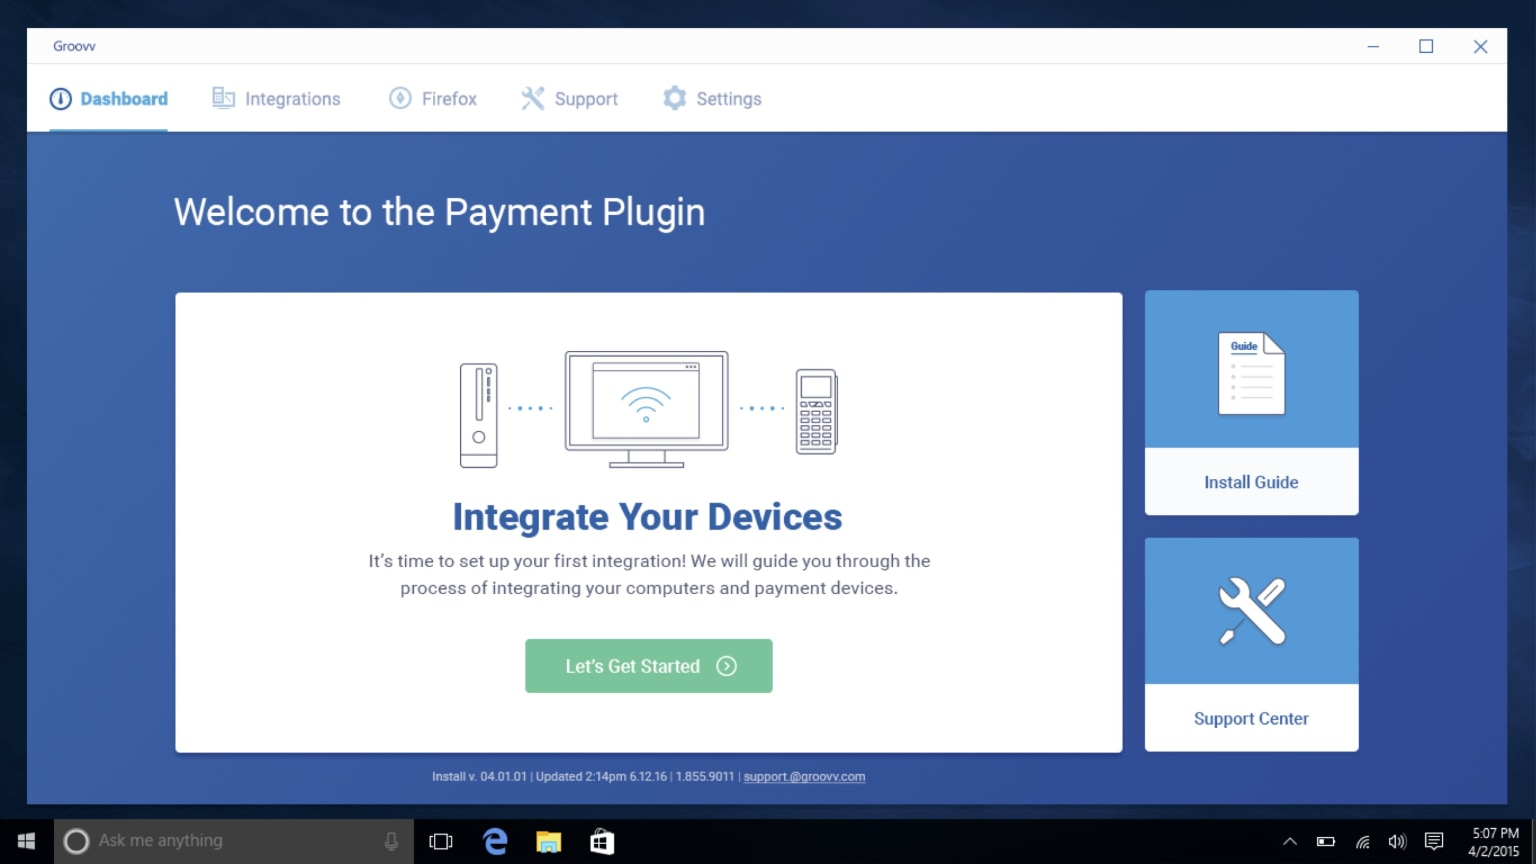 Groovv Payment Plugin